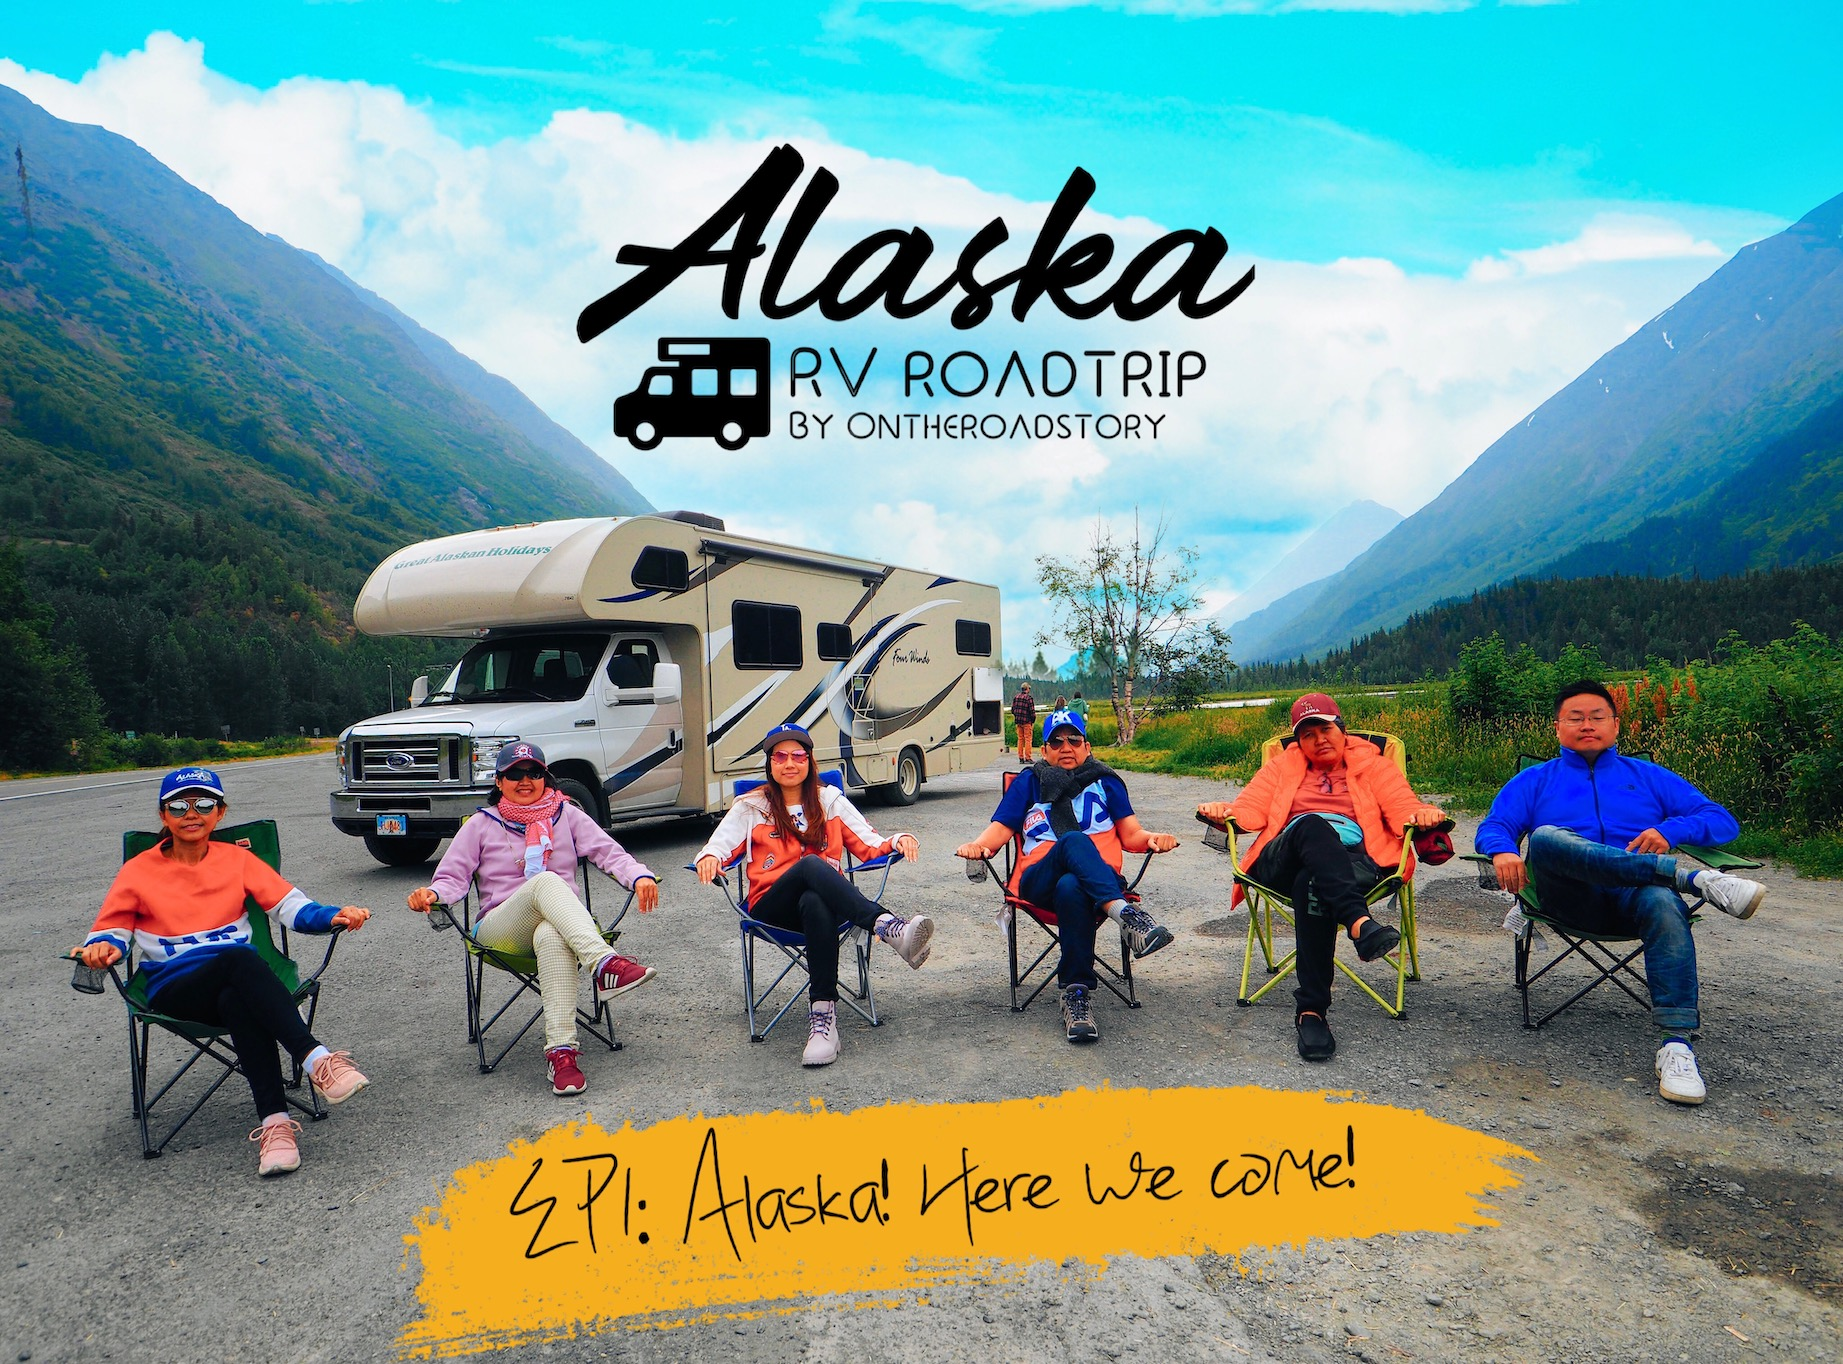 Alaska RV Road Trip: EP1 Alaska! Here we come!